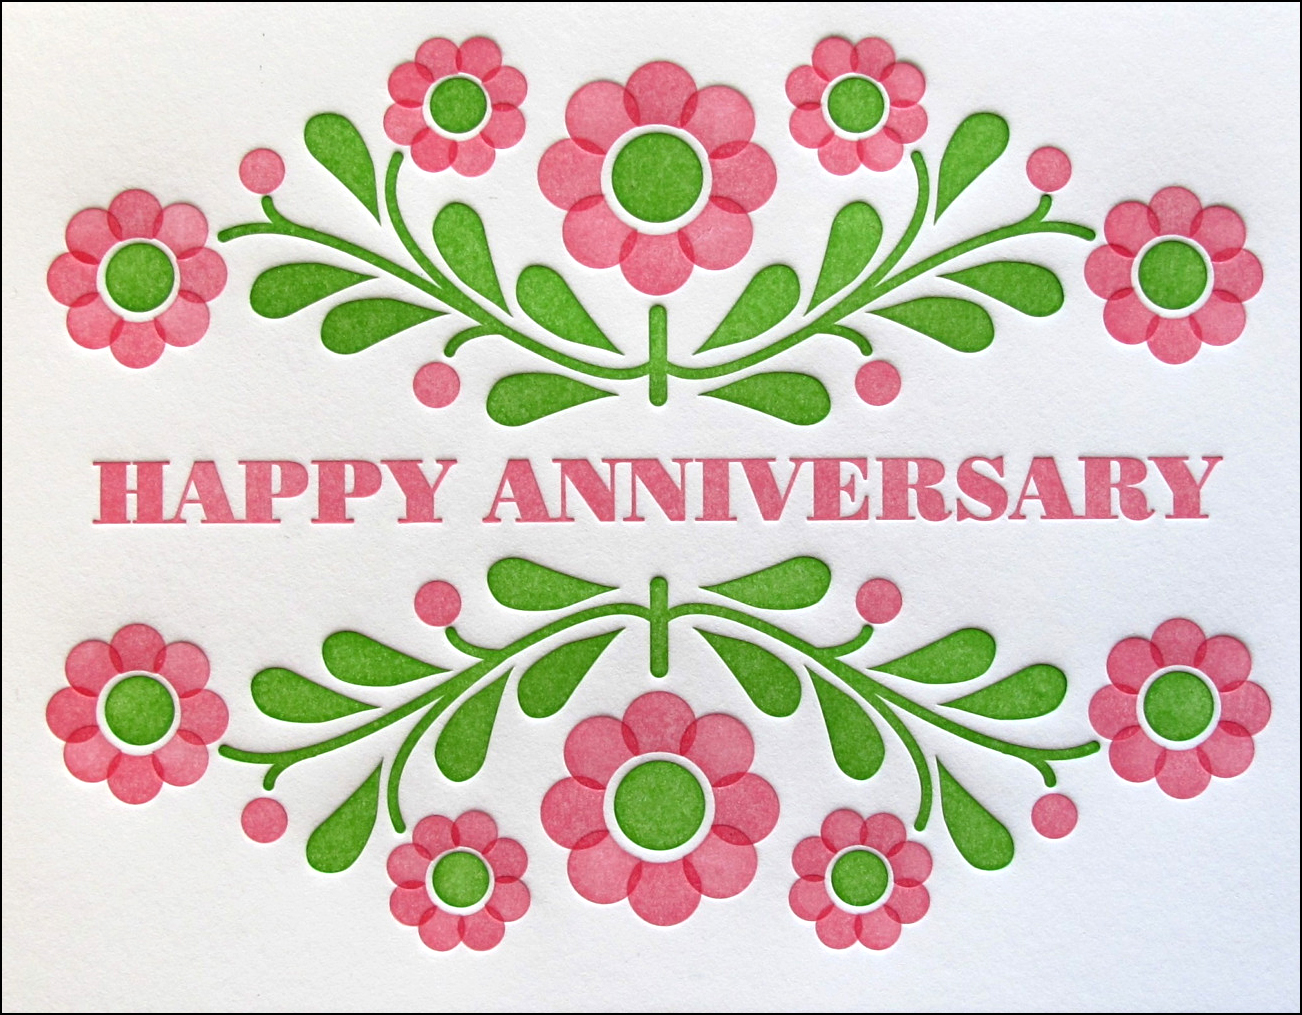 Leaves background clipart happy anniversary clip art transparent stock Happy Anniversary With Flowers Clipart - Clipart Kid clip art transparent stock